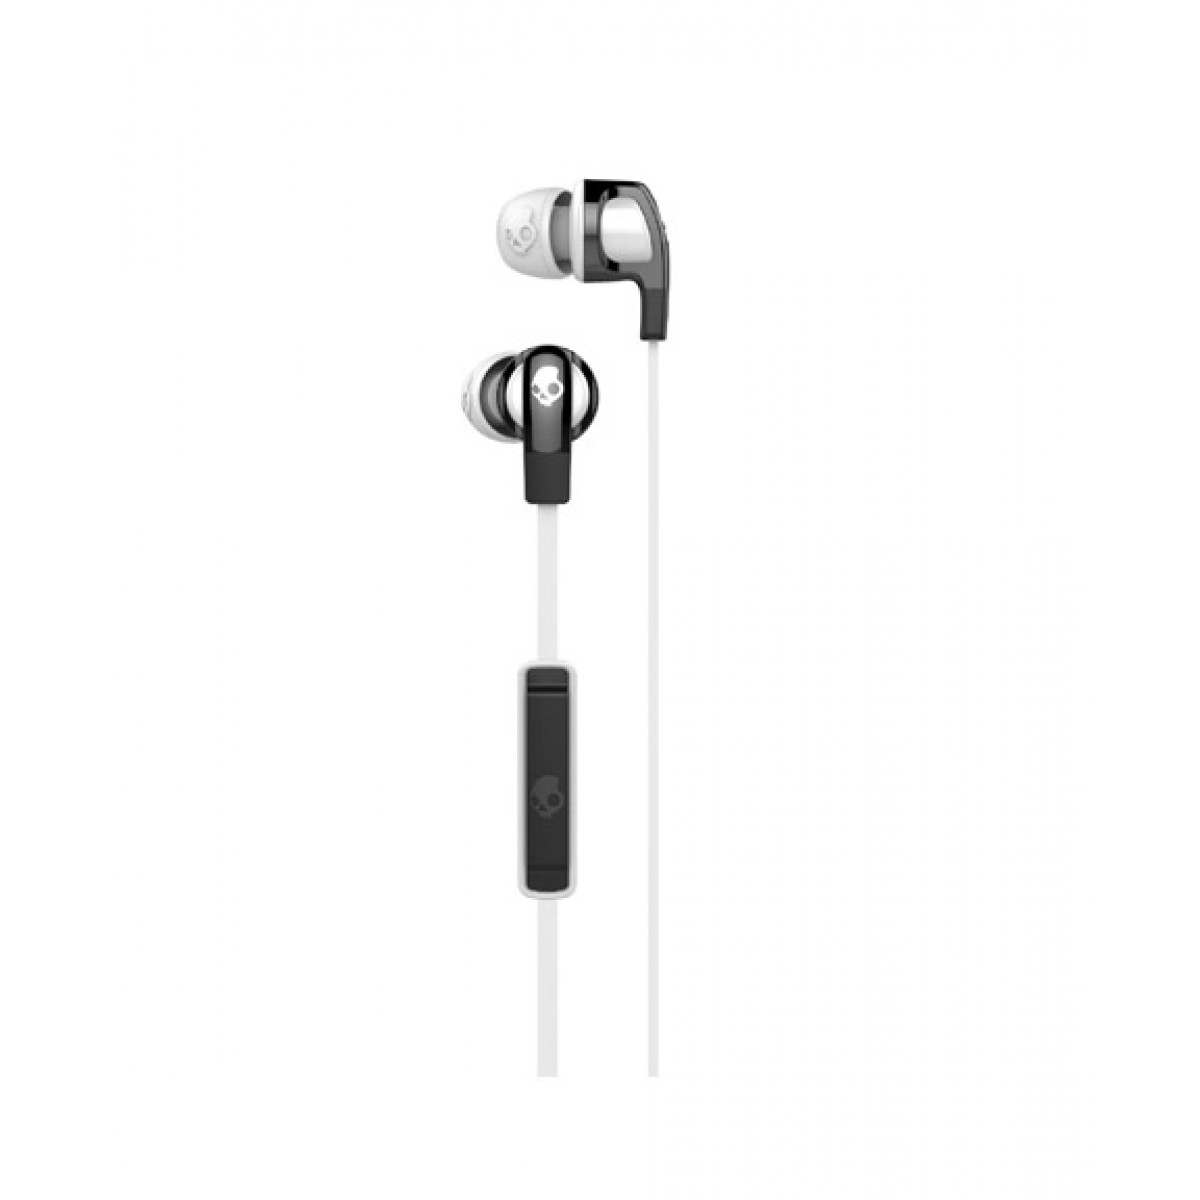 f0b97e69e19 Skullcandy Smokin Buds 2 In-Ear Headphones with Mic Black/White  (S2PGFY-328) Price in Pakistan | BuySkullcandy Smokin Buds 2 In-Ear  Headphones with Mic ...